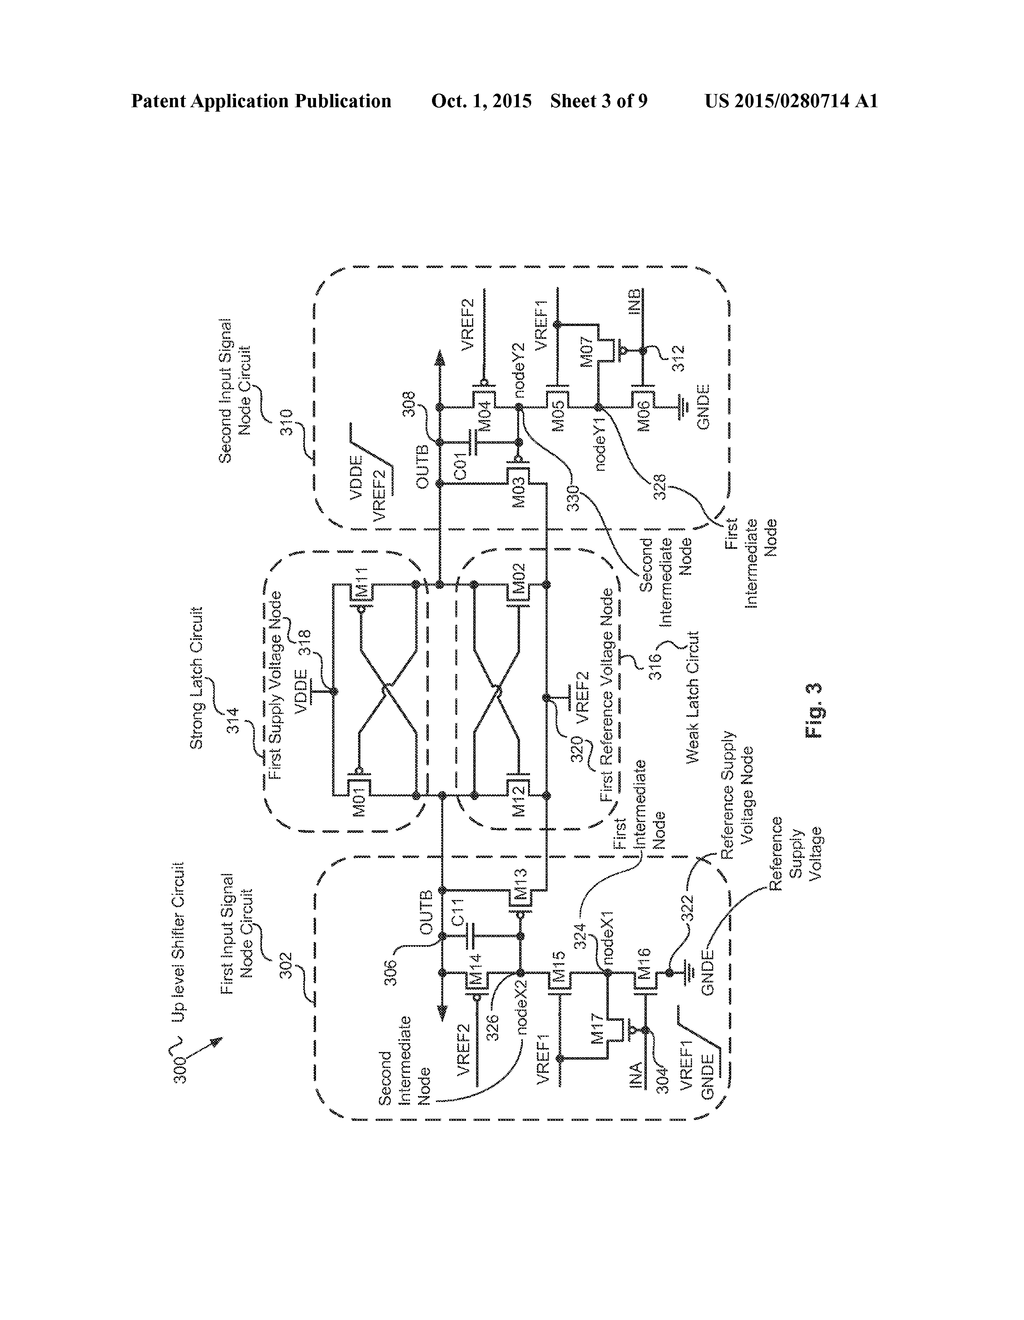 Voltage Level Shifter Circuit System And Method For Wide Supply Applications Diagram Schematic Image 04